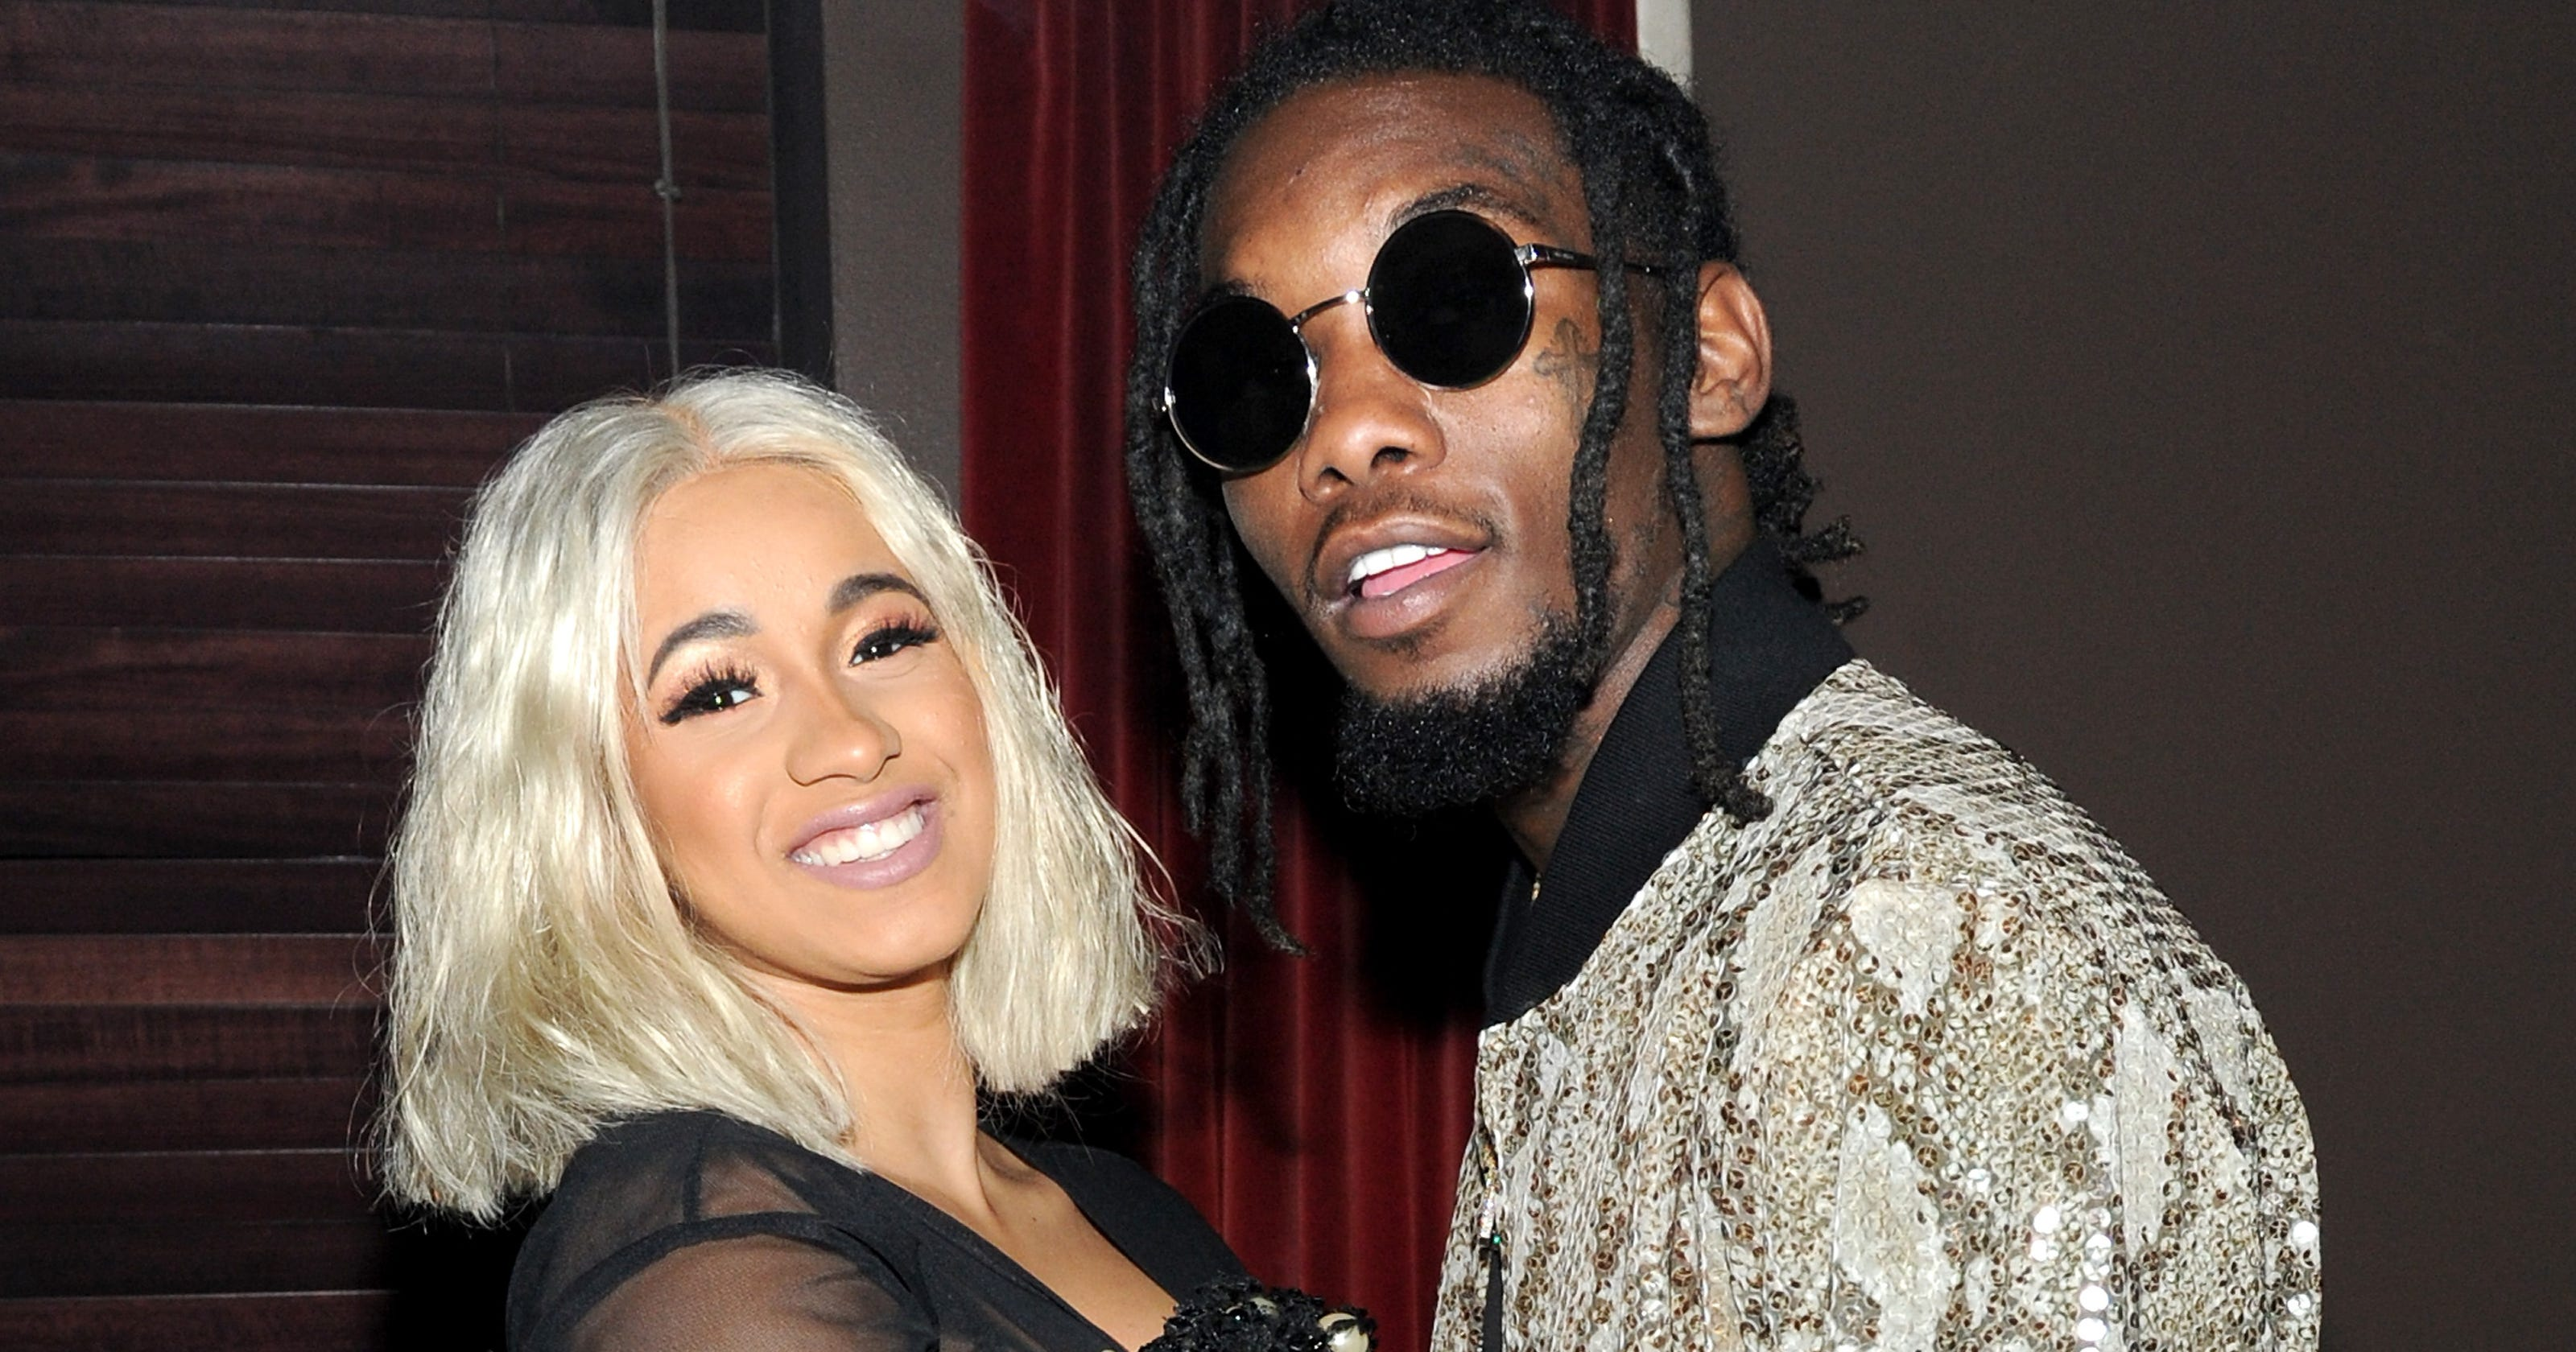 Cardi B S Fiancé Offset Loses 150k Chain After The Met Gala: 'Be Careful': Cardi B Addresses Her Fiance Offset's